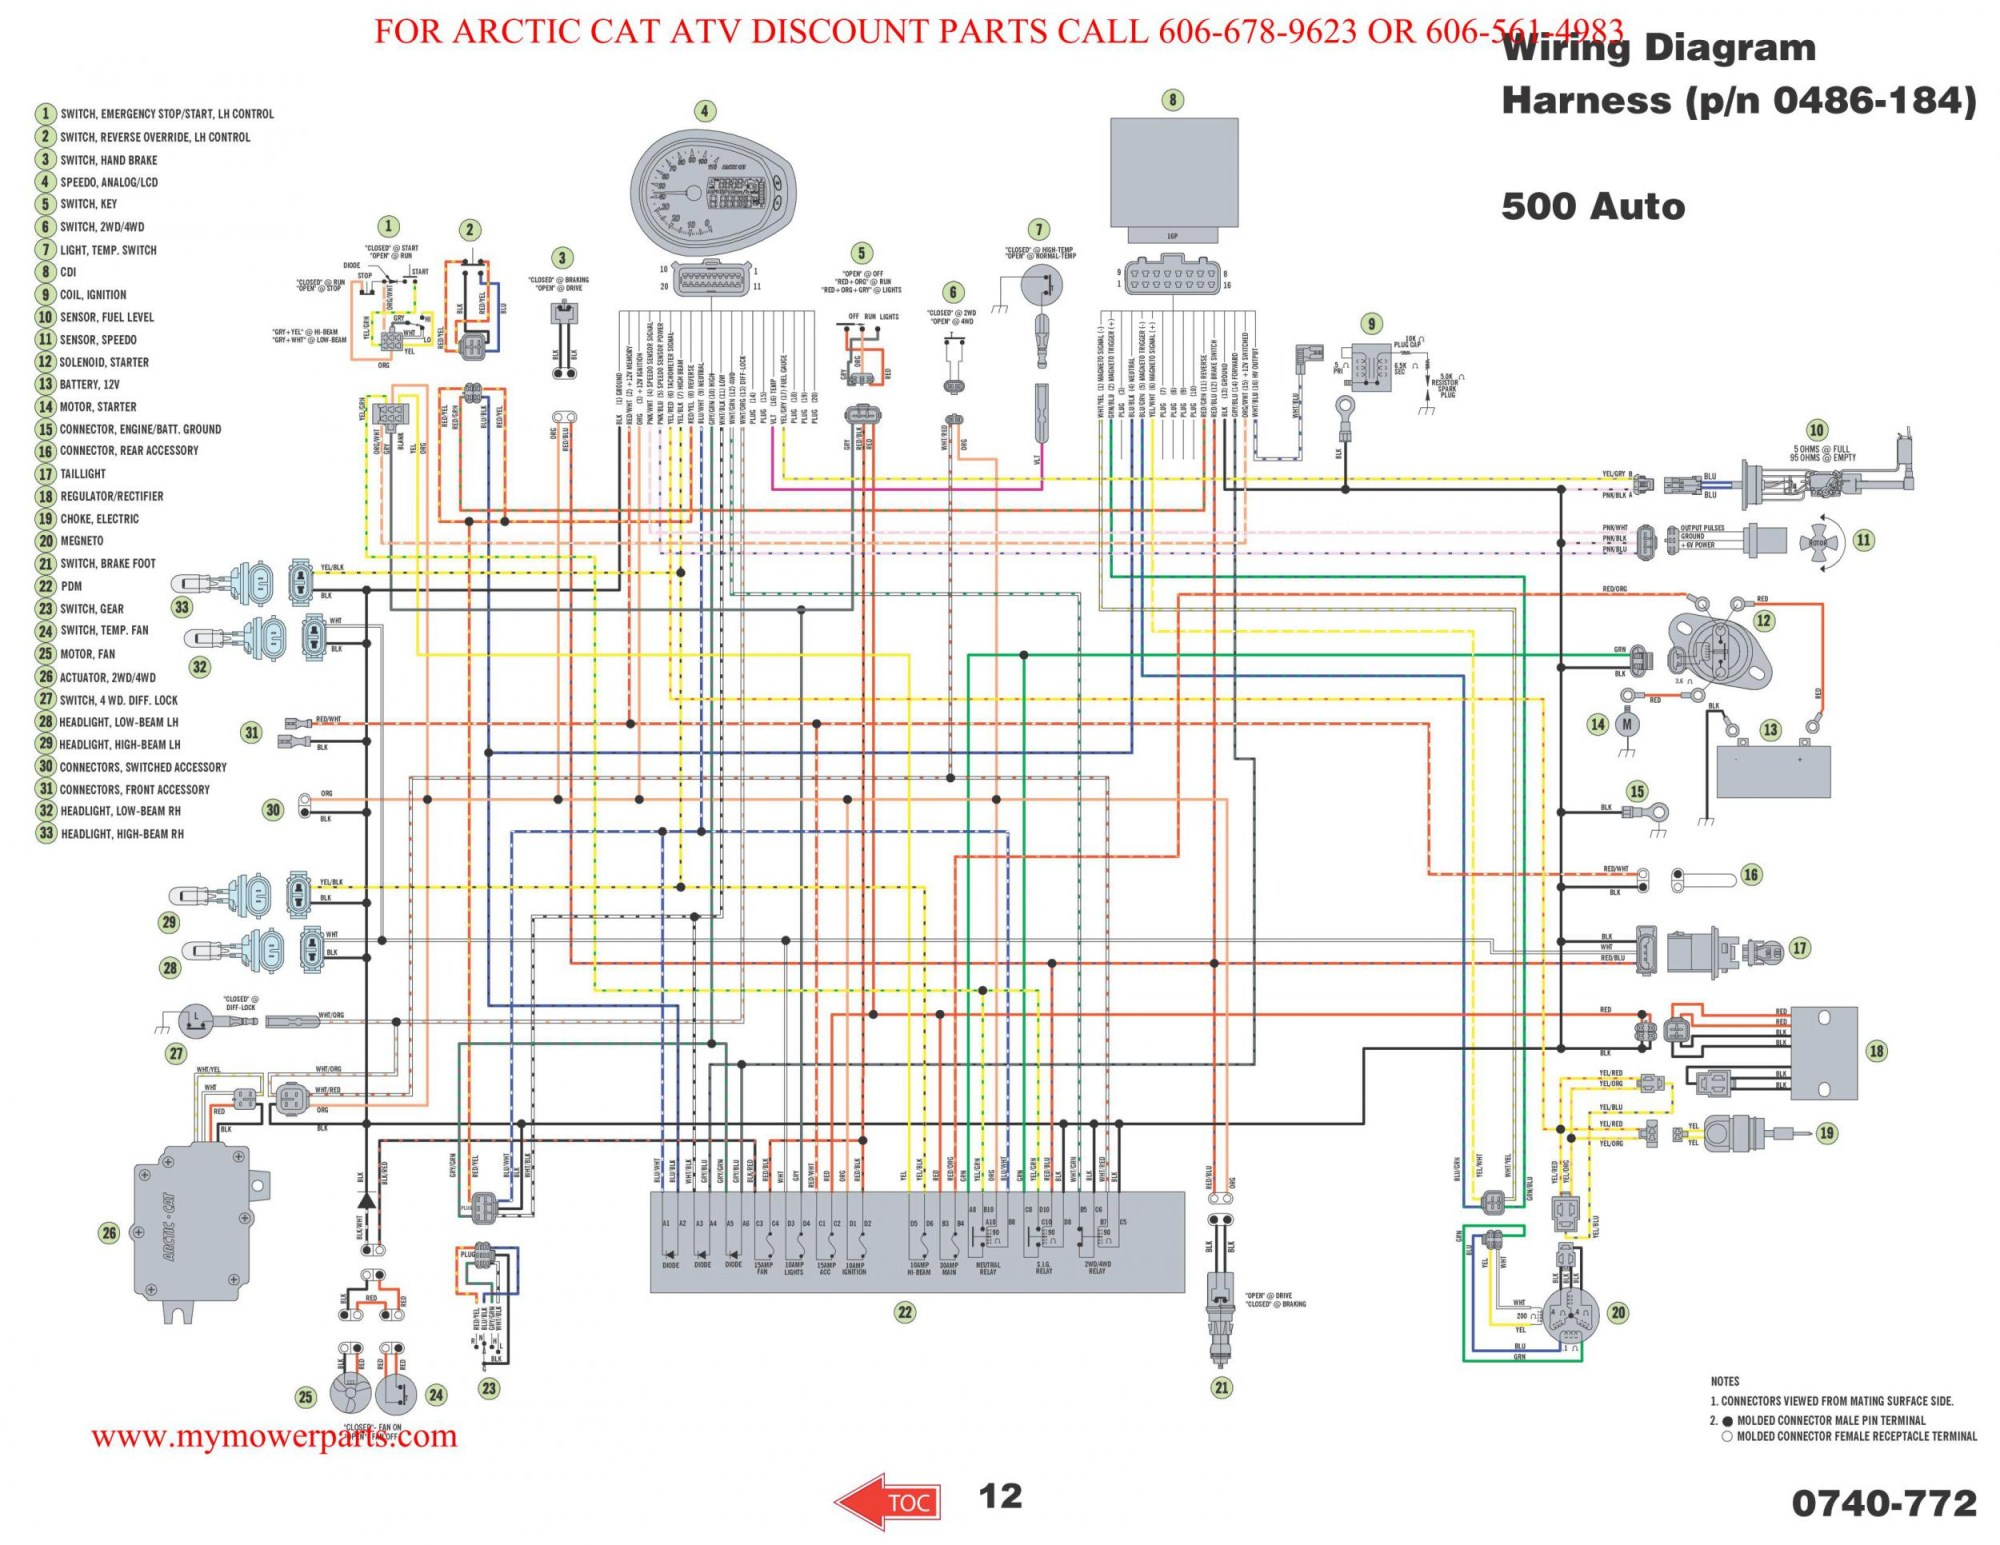 hight resolution of arctic cat wiring wiring diagram arctic cat 300 4x4 wiring diagram wiring diagram centre mix arctic